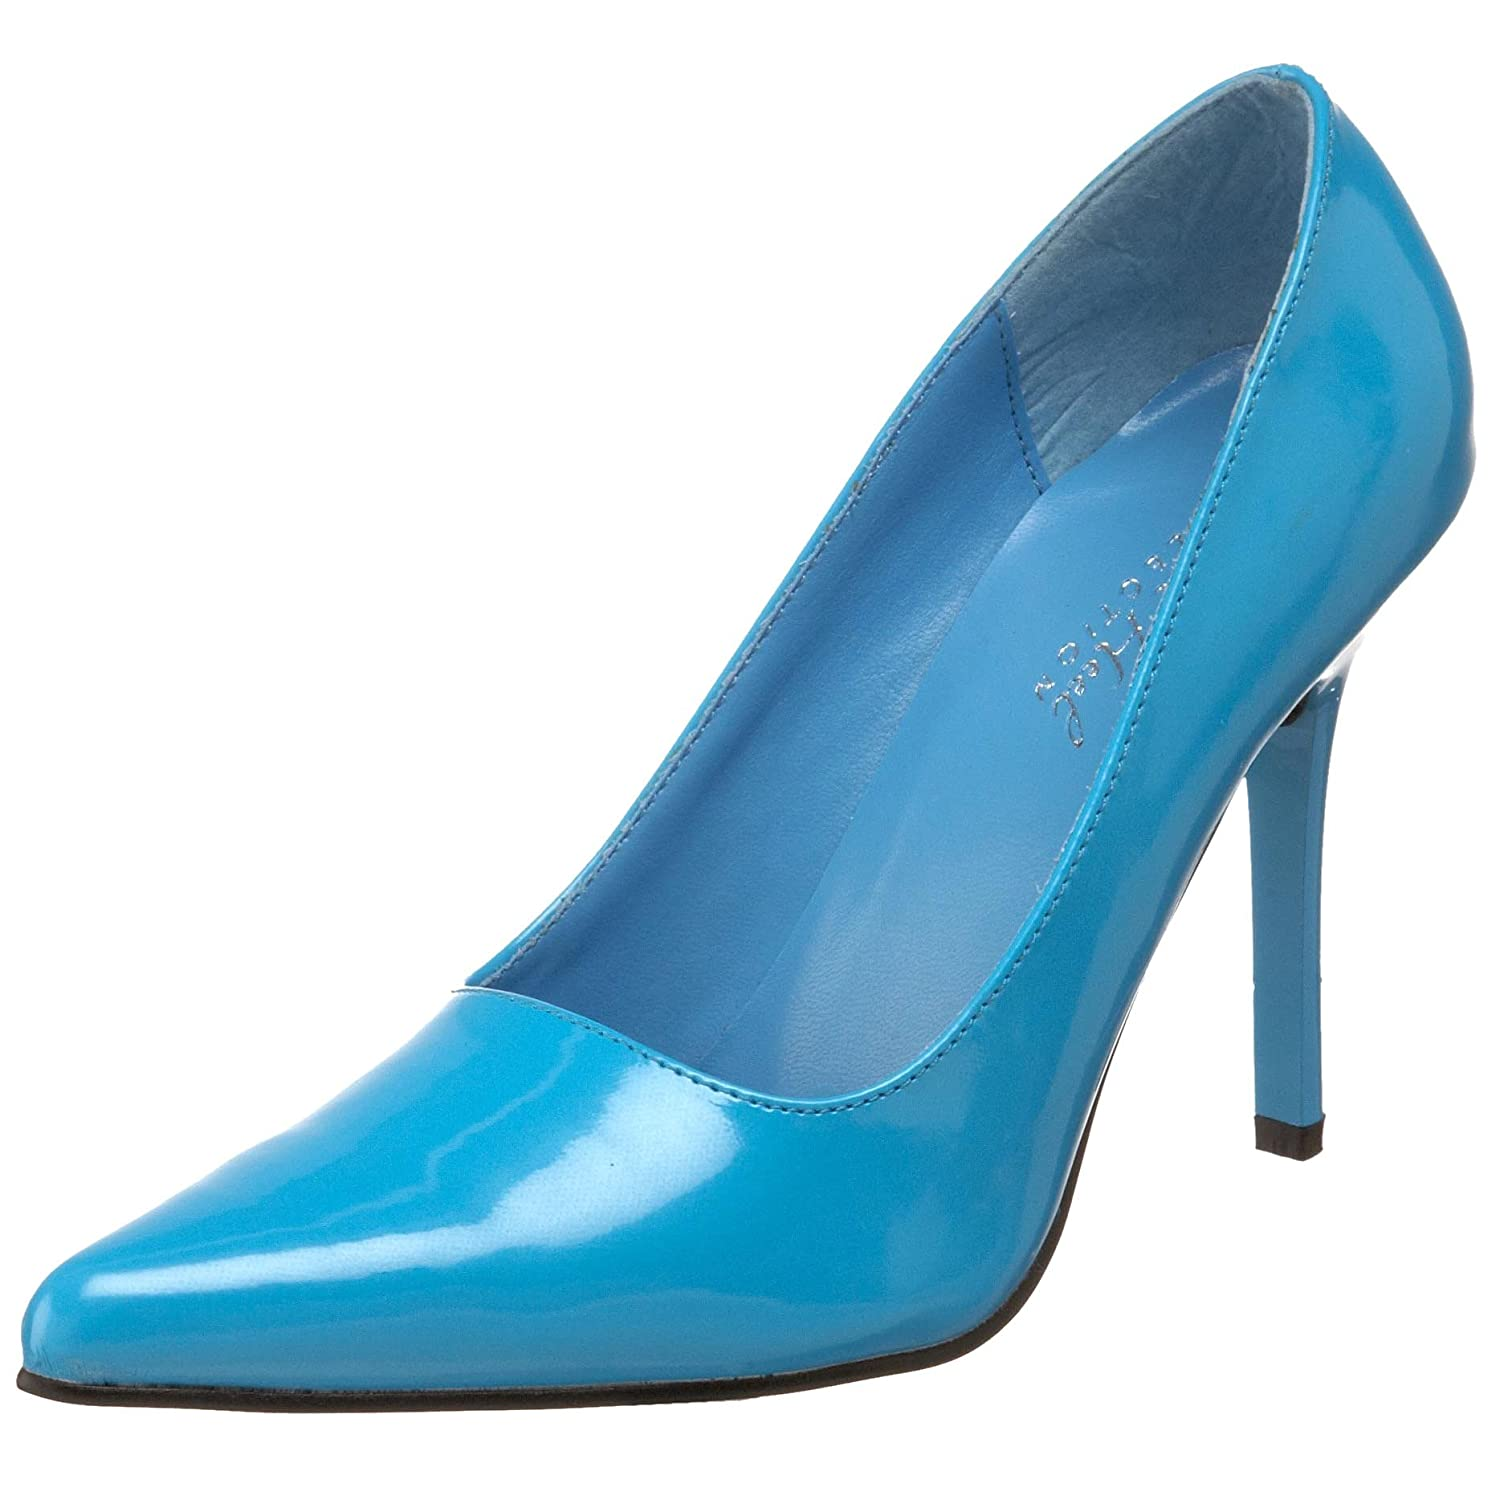 The Highest Heel Women's Classic Pump B000T86MSW 7.5 B(M) US|Turquoise Patent Polyurethane